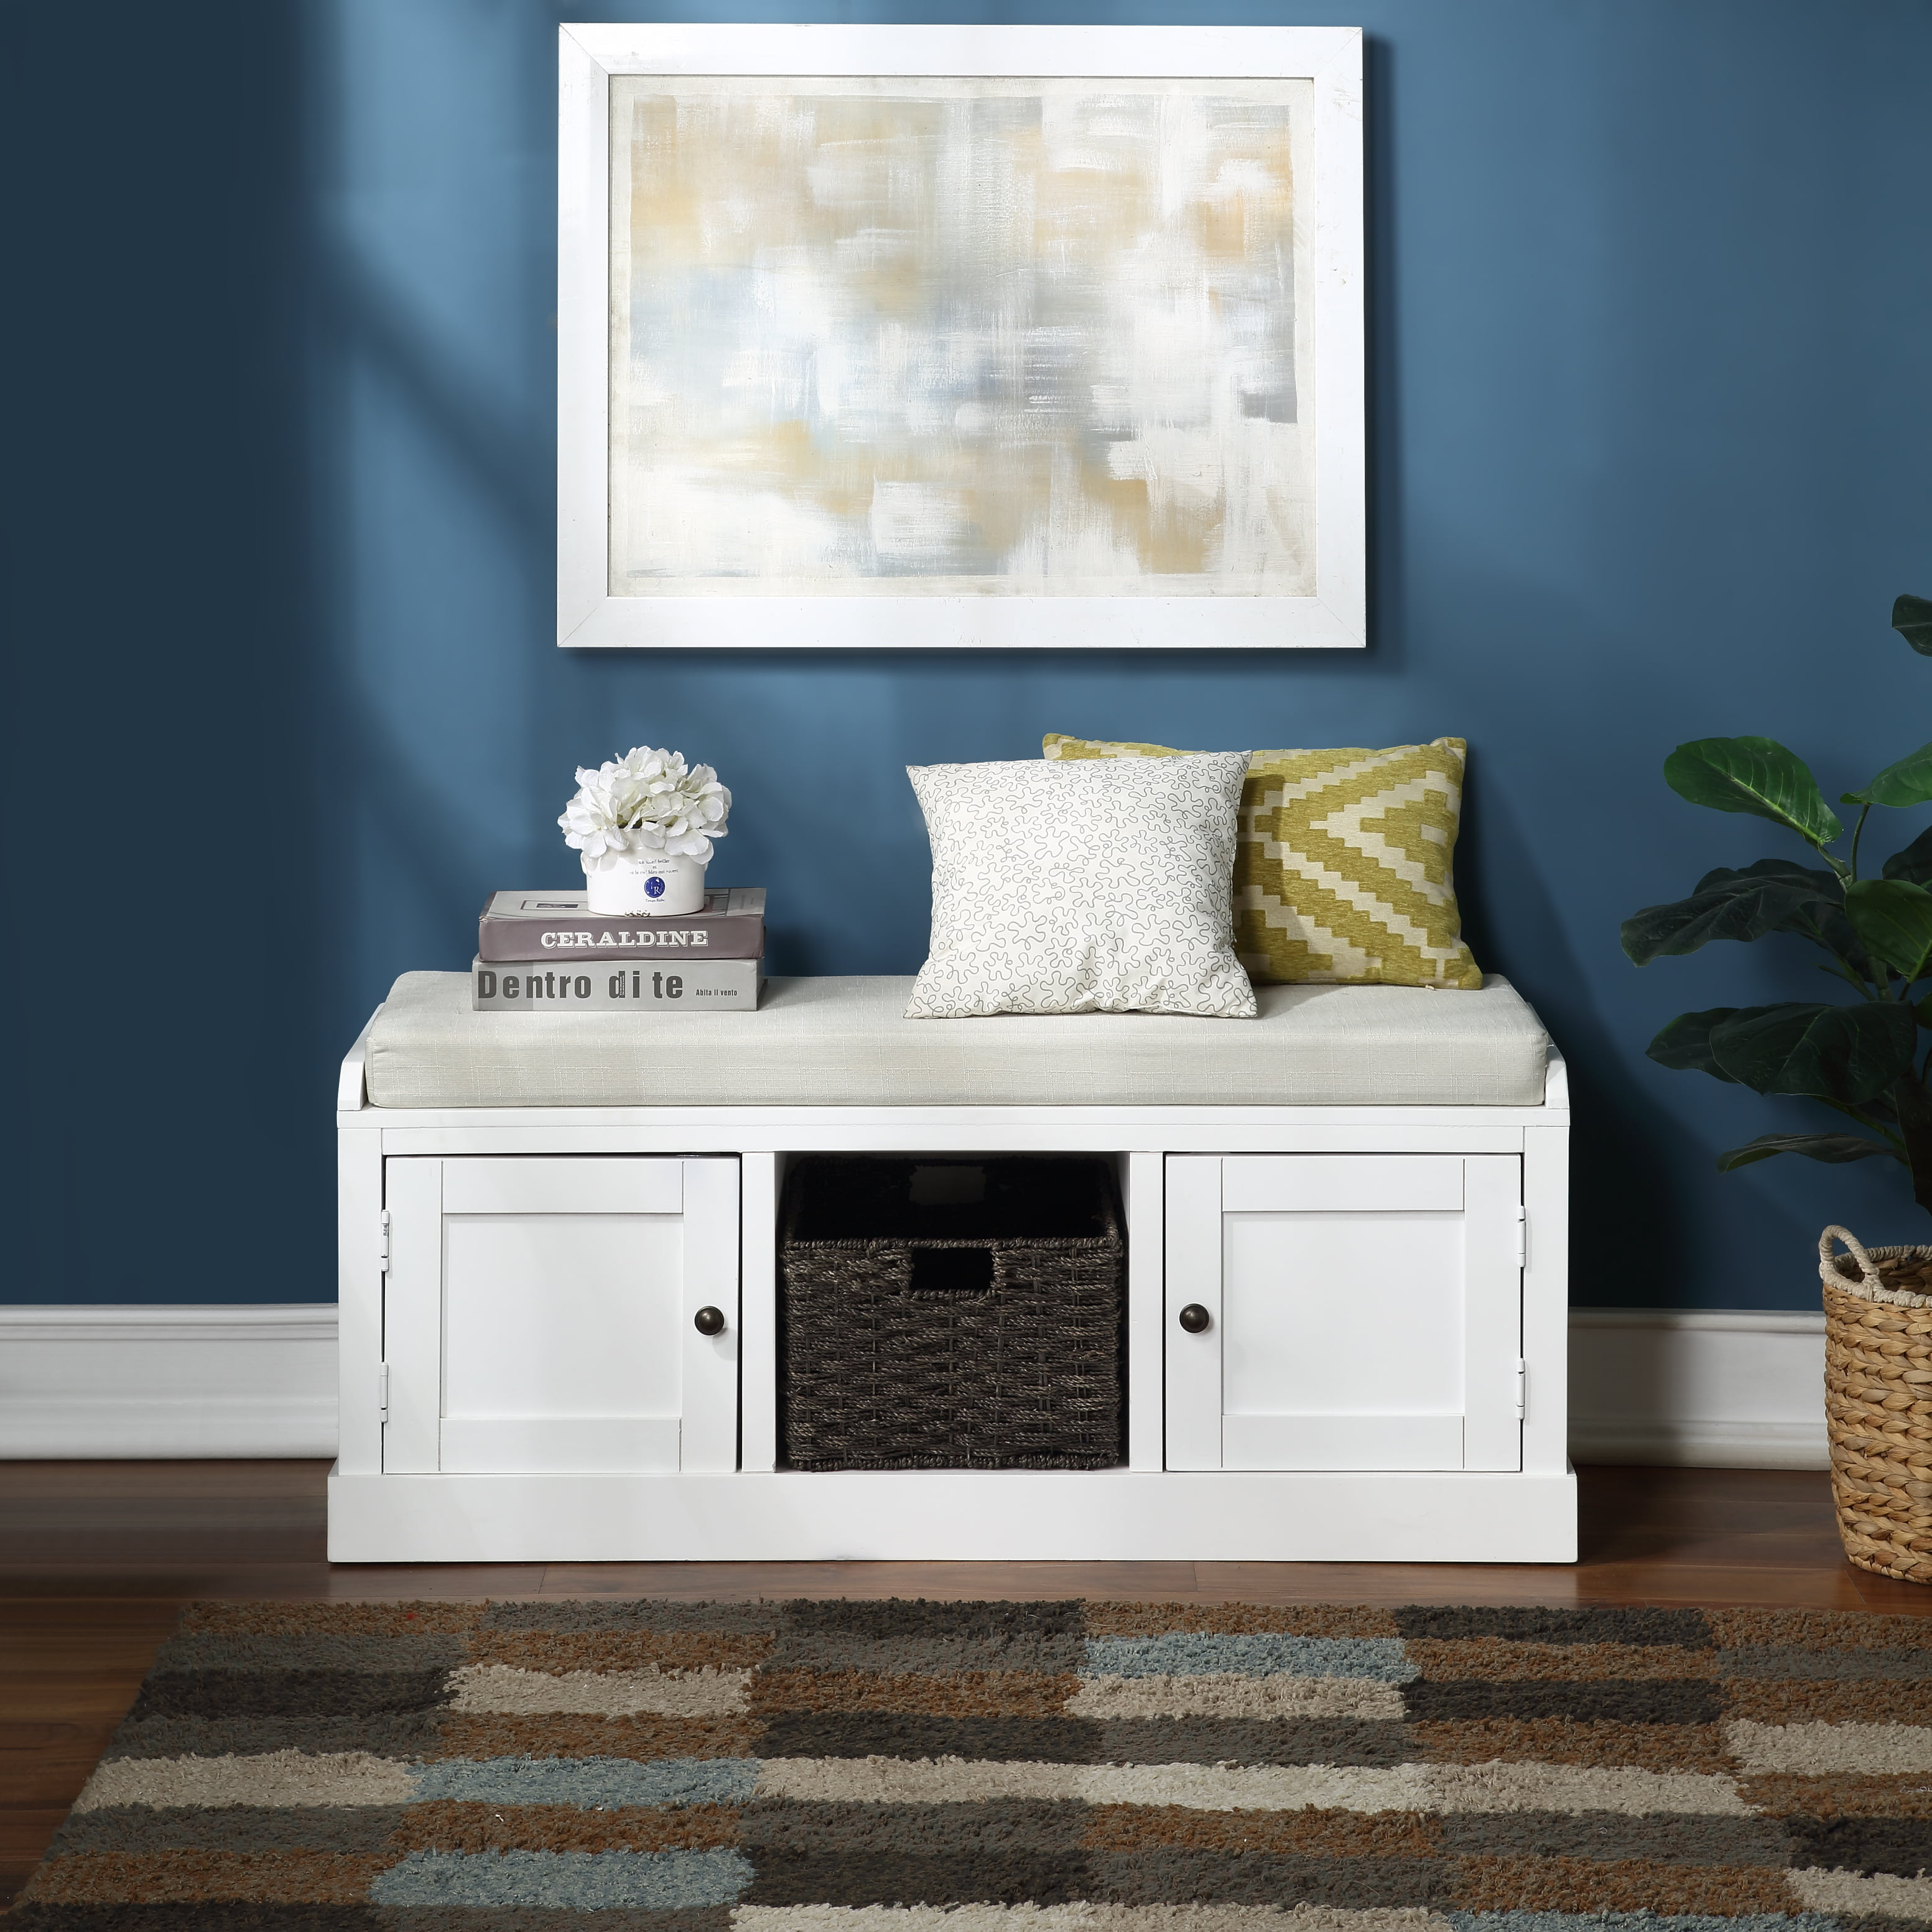 White Entryway Storage Bench Yofe Storage Bench With 2 Cabinets And 1 Basket Wood Entry Storage Bench With Cushion Rustic Shoe Bench Storage Bench For Entryway Hallway Mudroom Living Room R3472